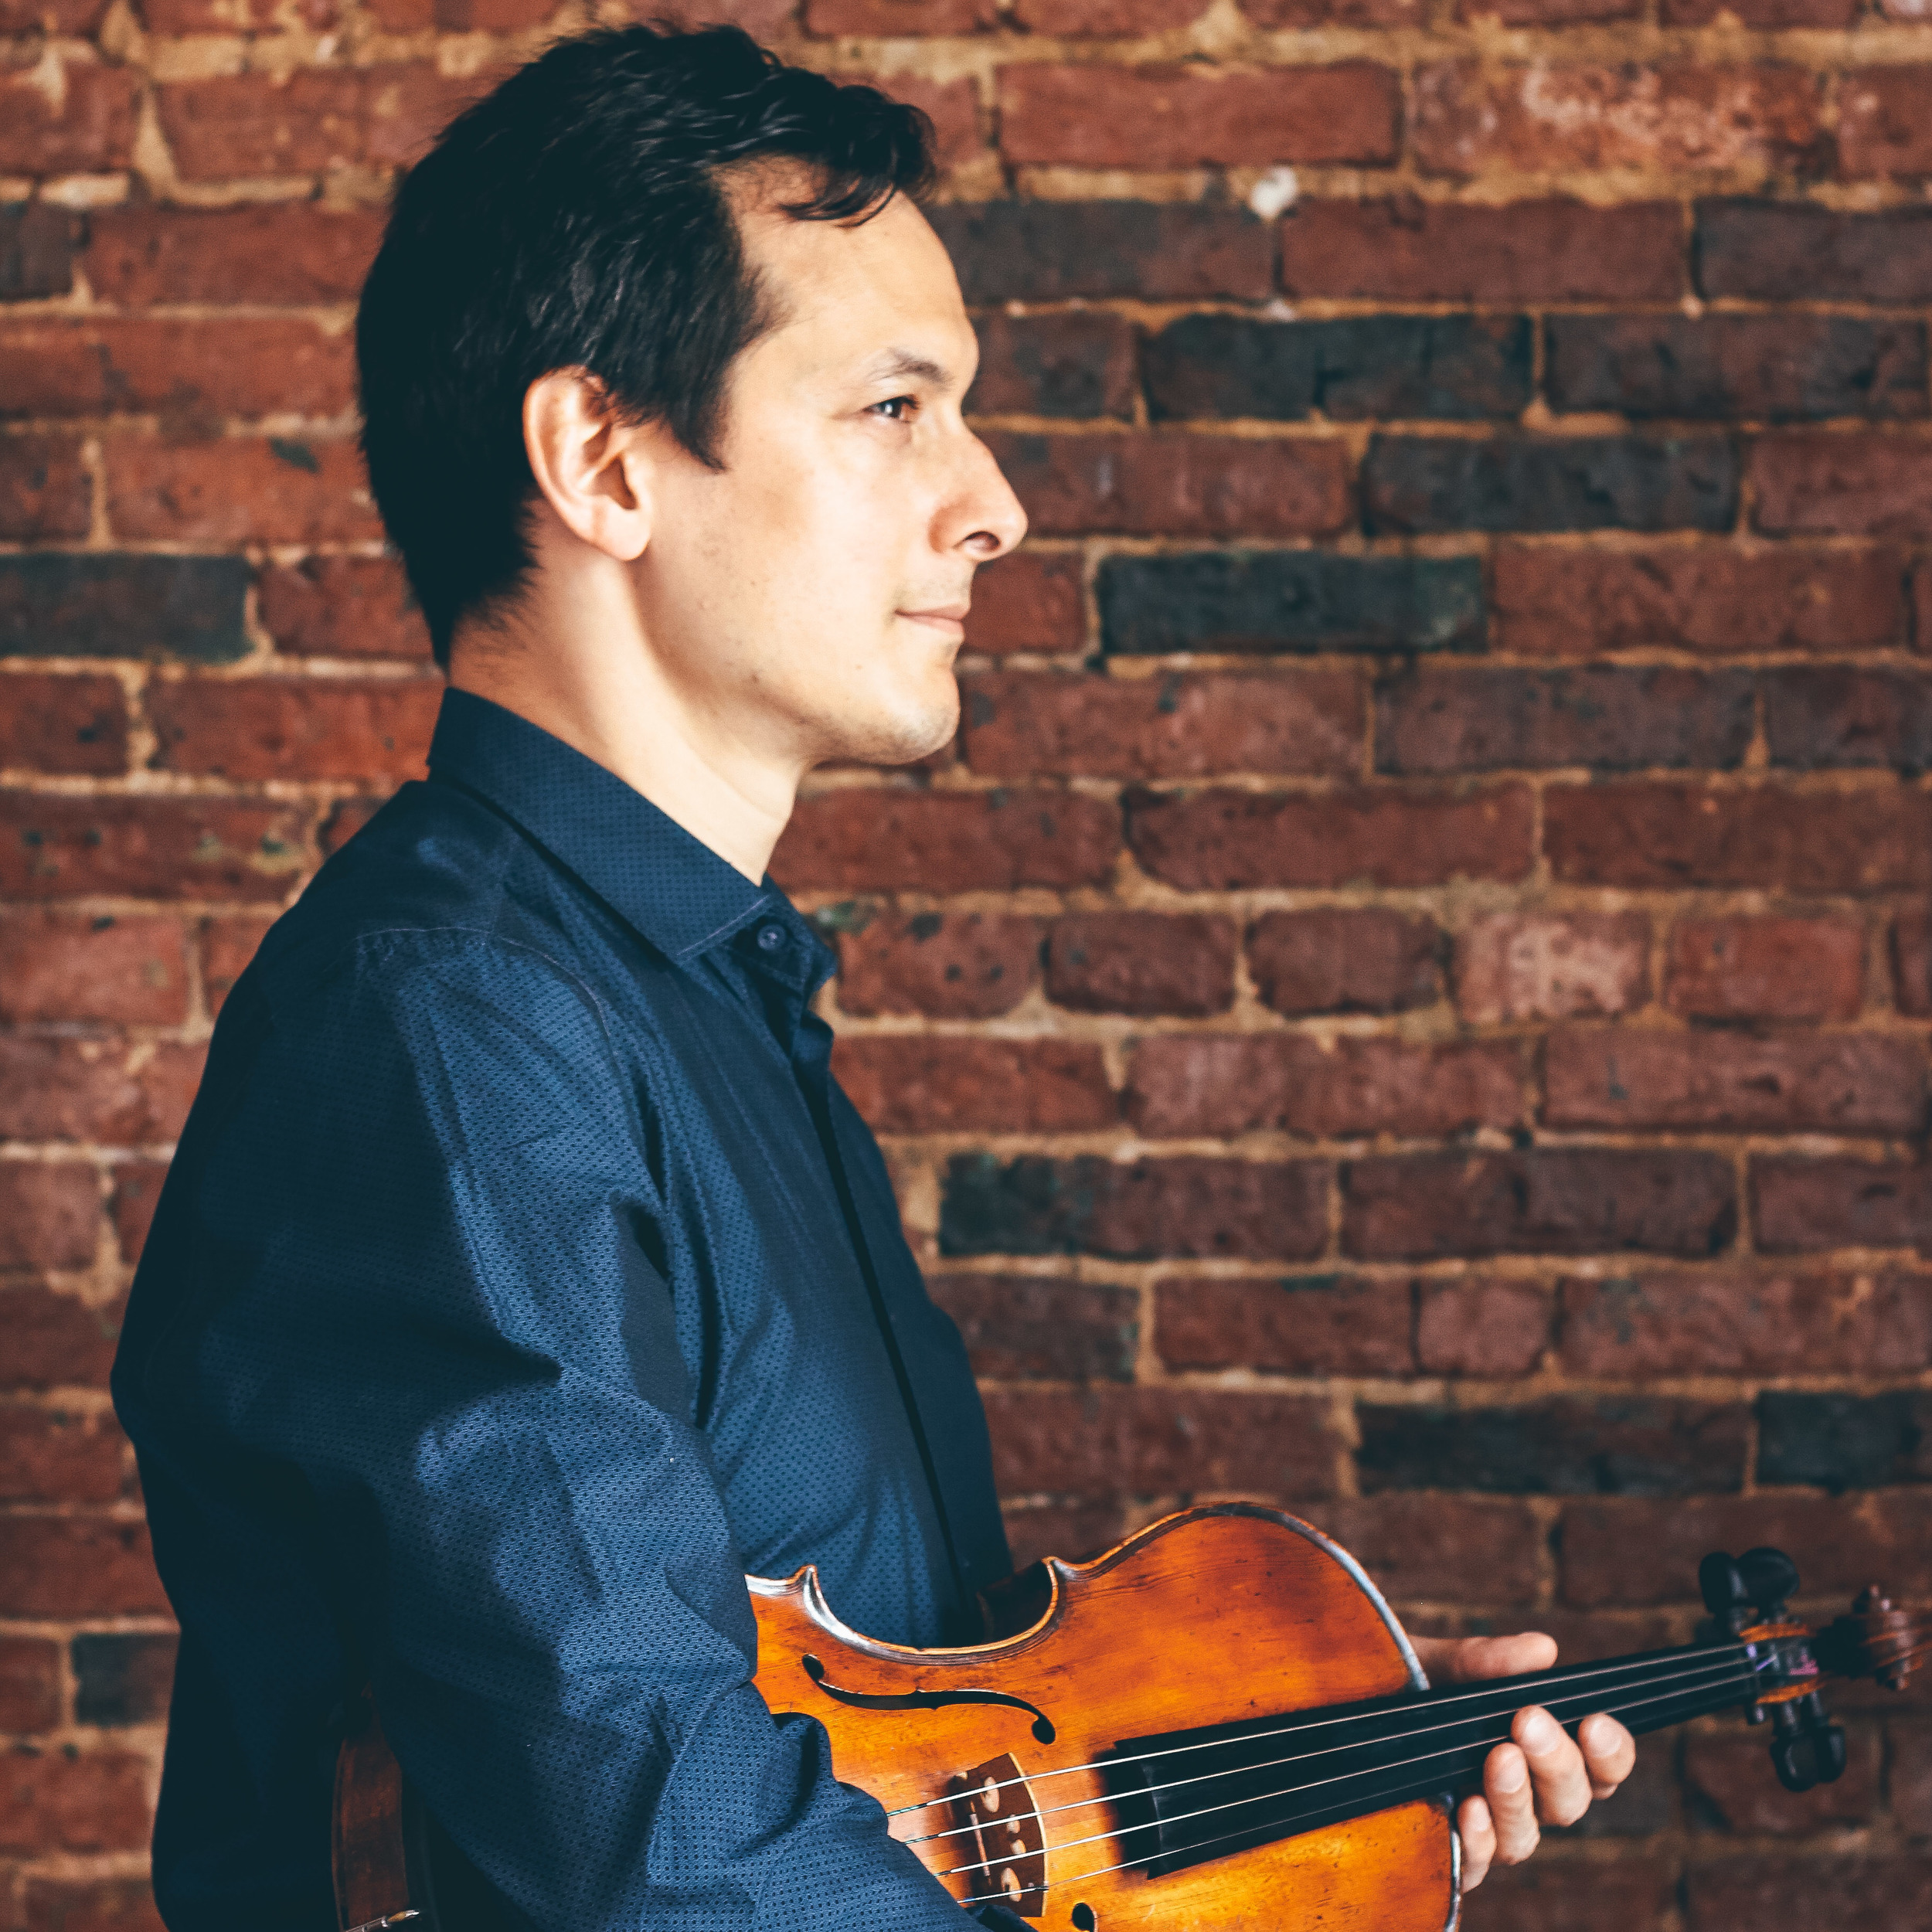 David YANG is the  Artistic Director of the Newburyport Chamber Music Festival and talks about the festival and love for nbpt